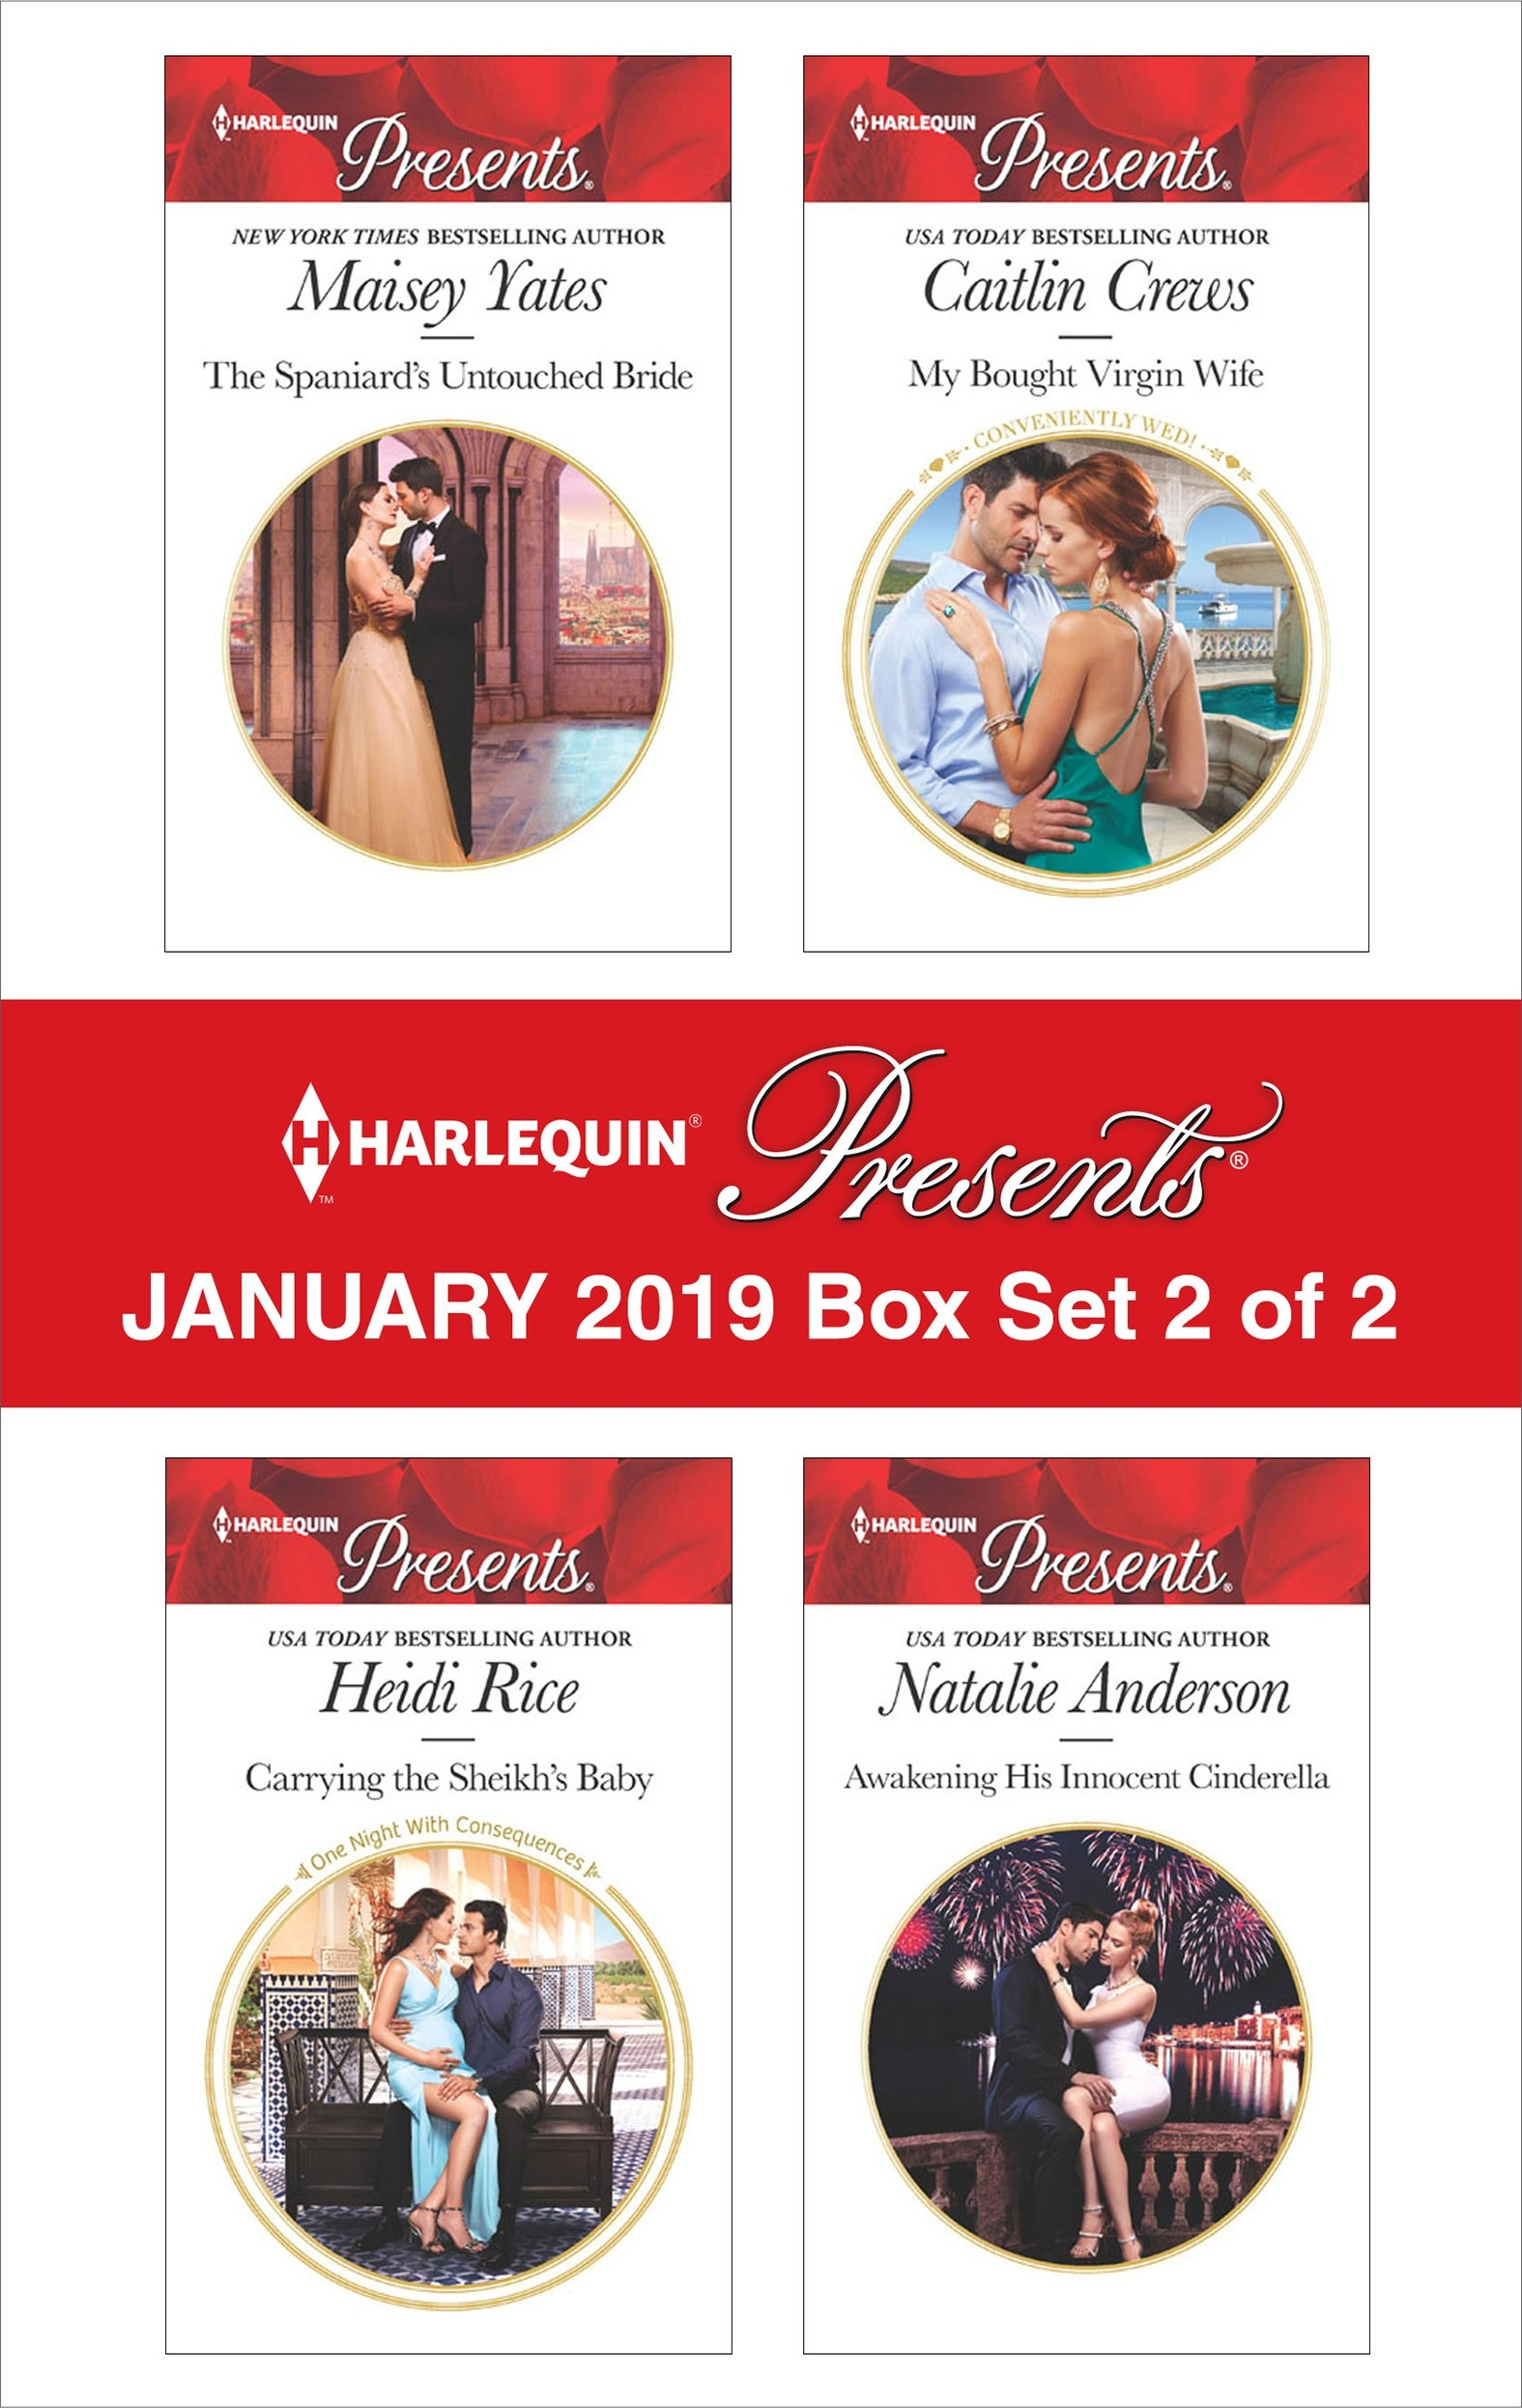 Harlequin Presents January 2019 - Box Set 2 of 2